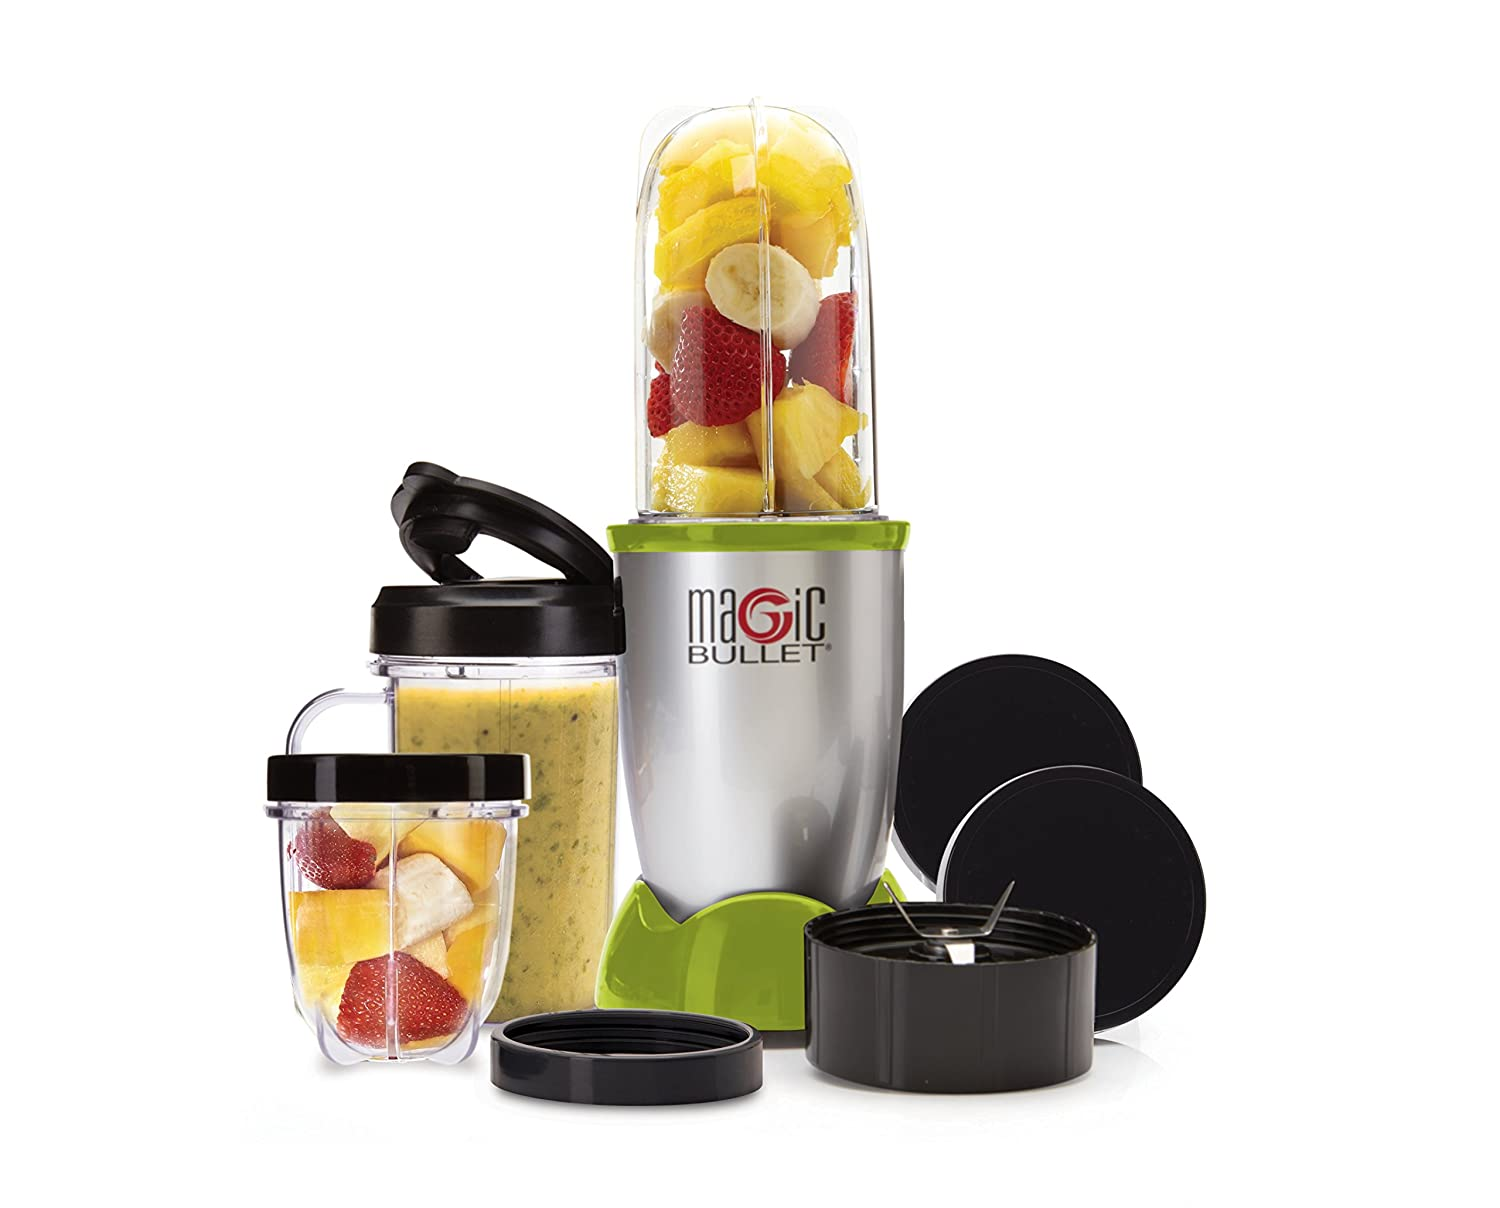 Magic Bullet Blender Review